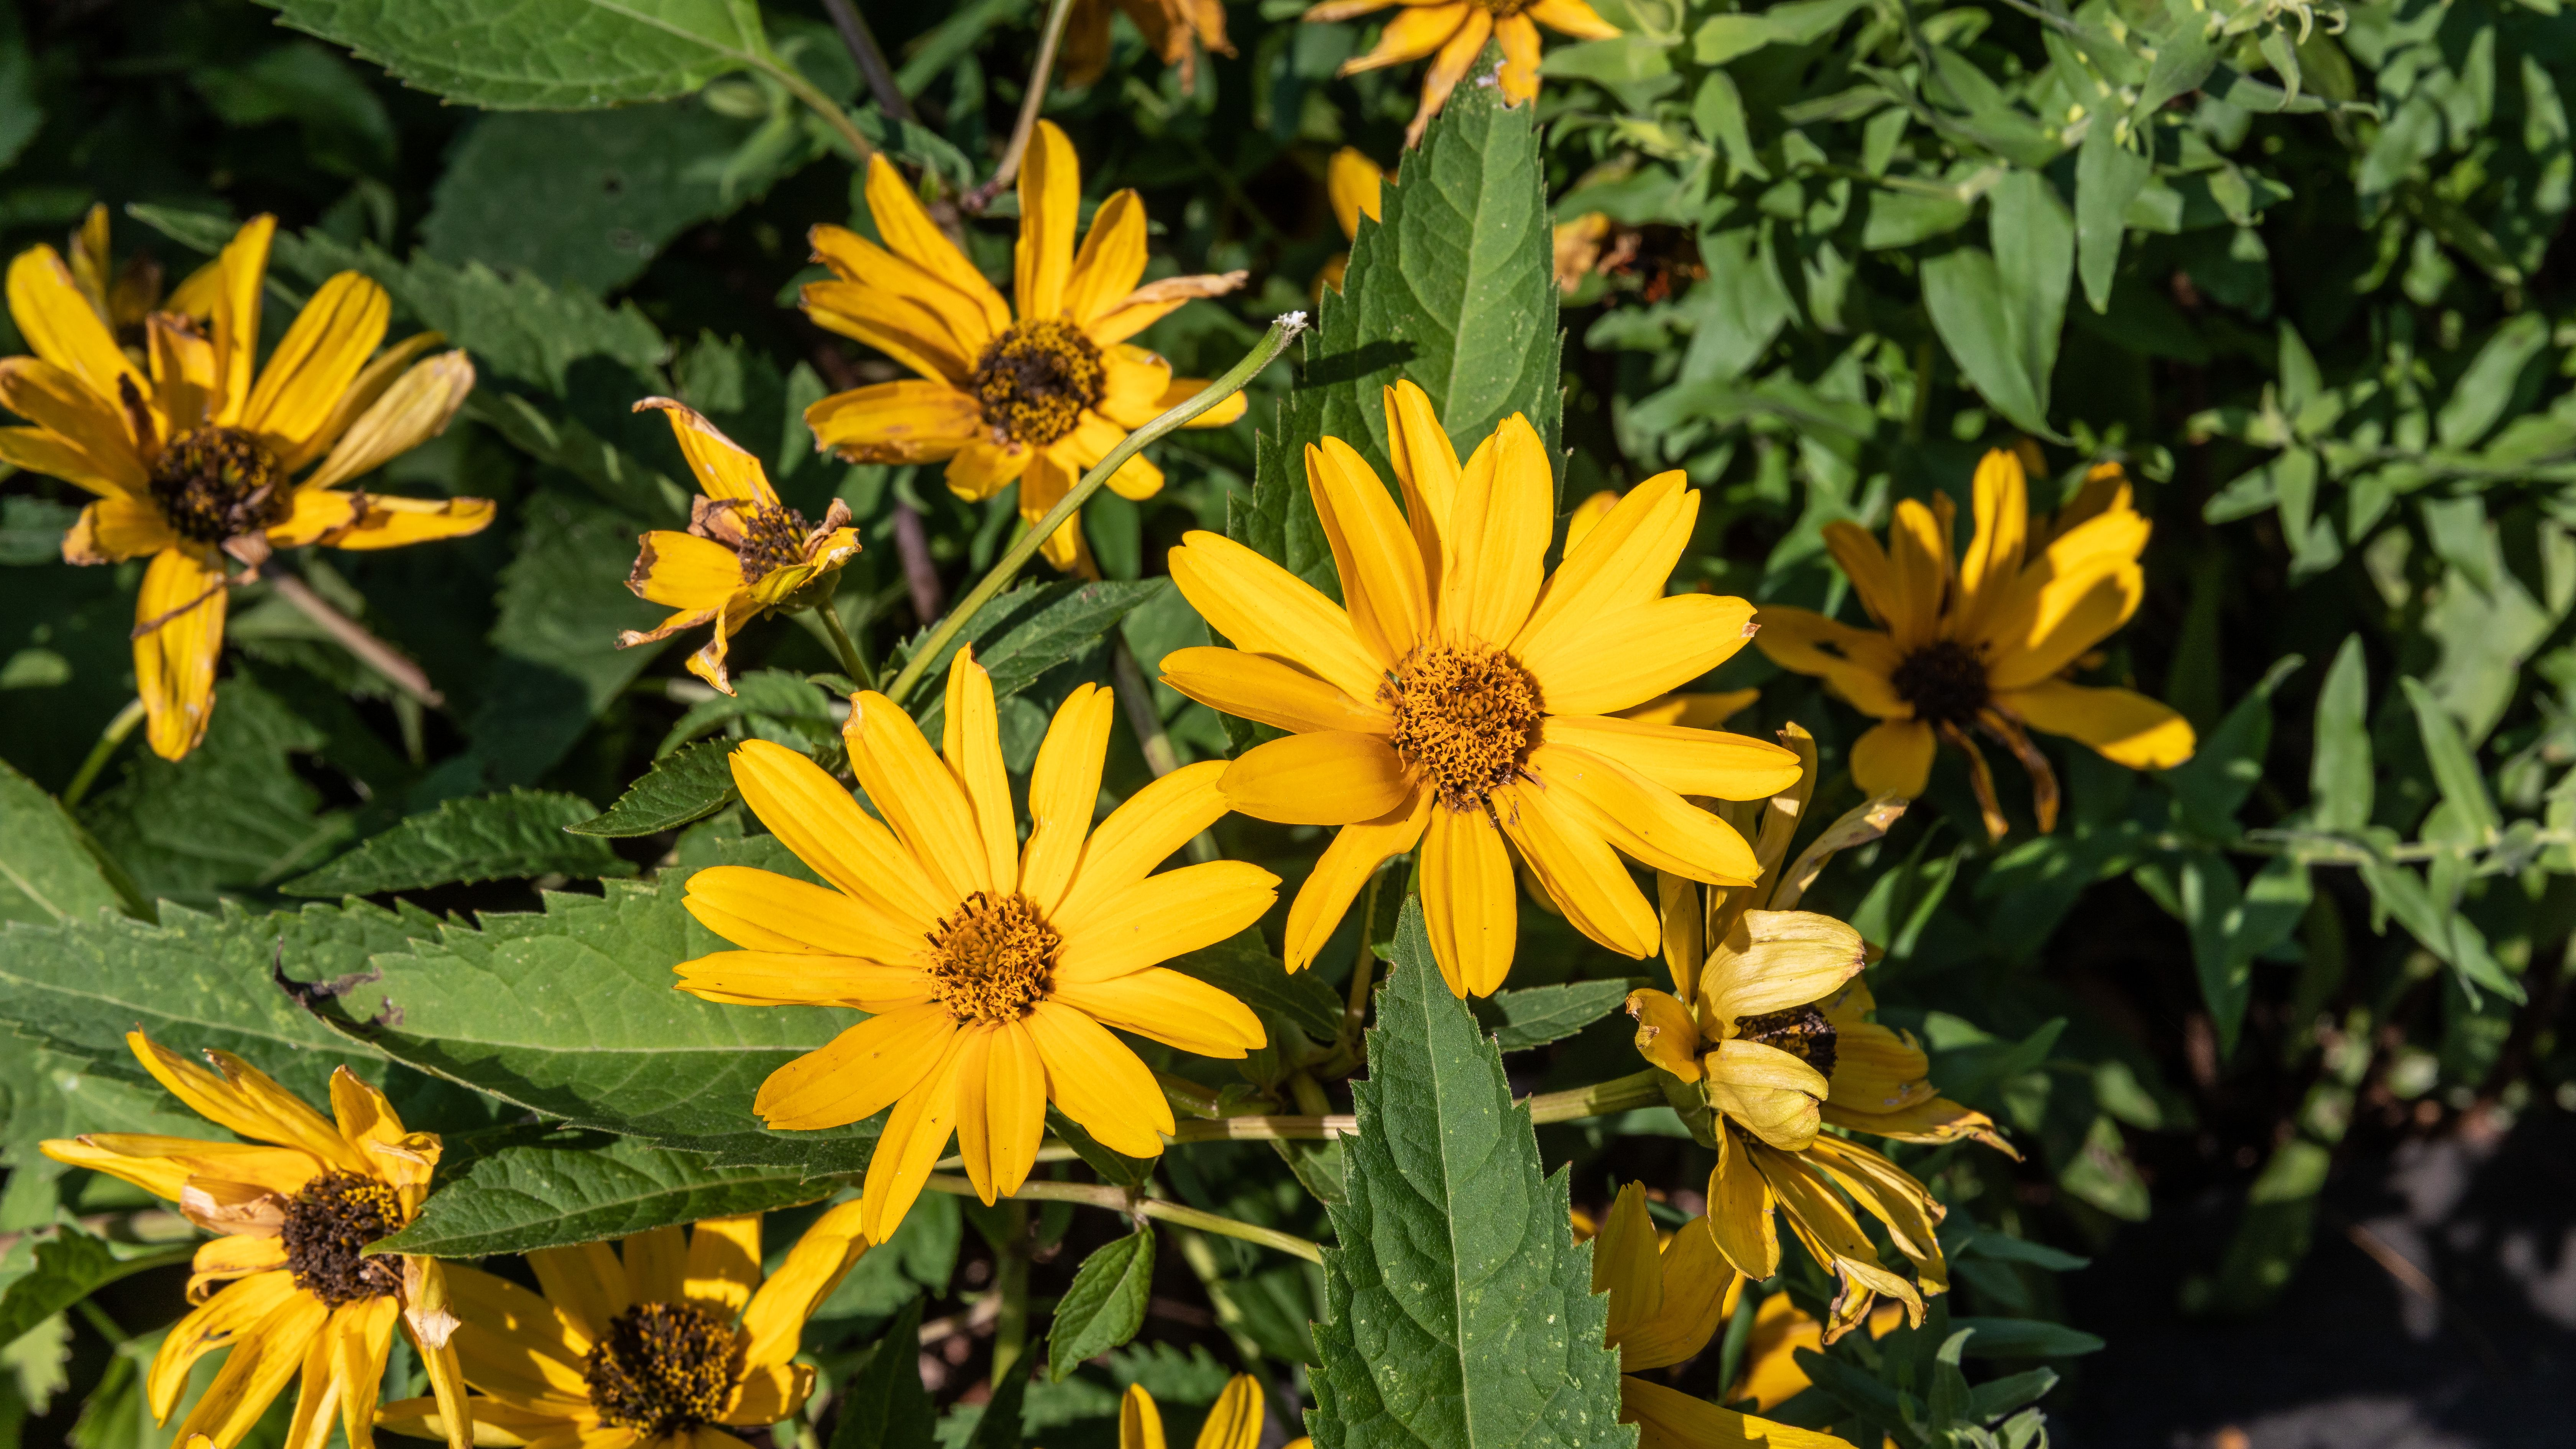 13 Recommmended Plants With Daisy Like Flowers